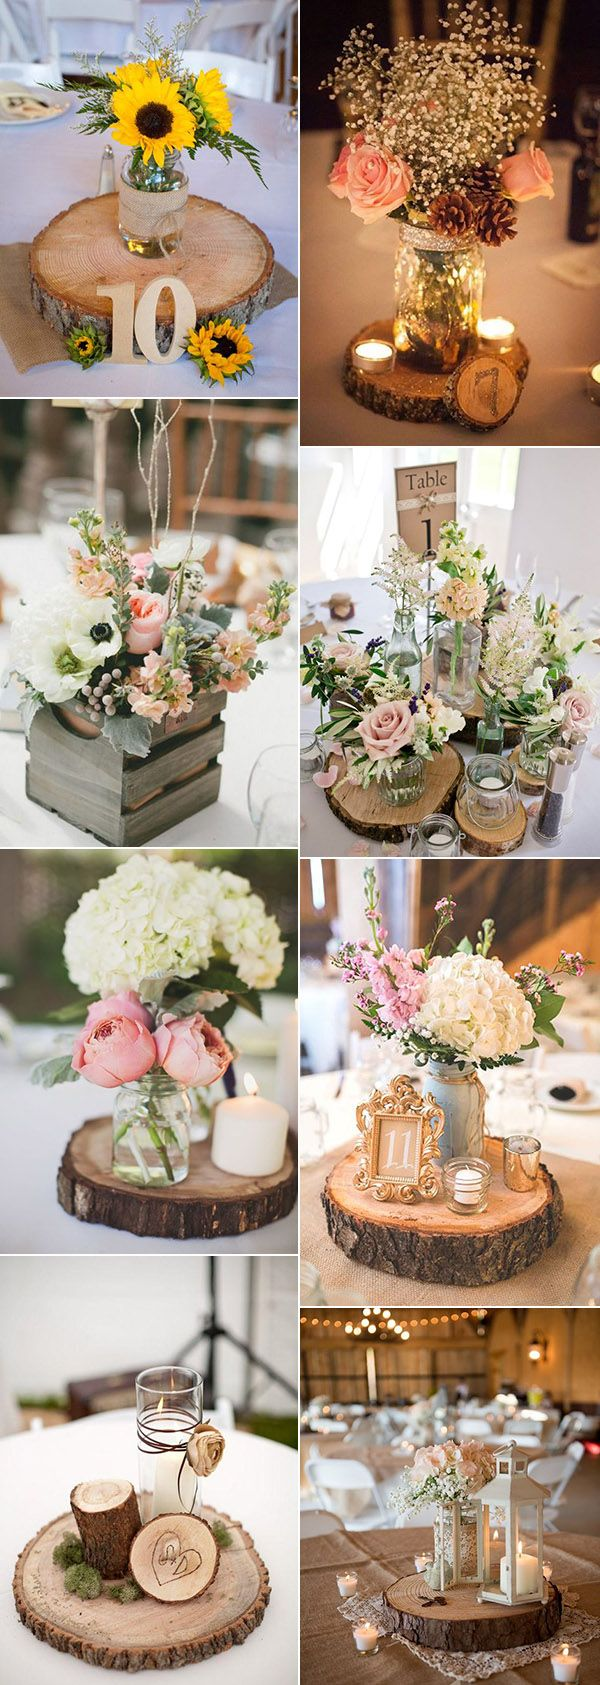 25+ Best Ideas About Wood Themed Wedding On Pinterest